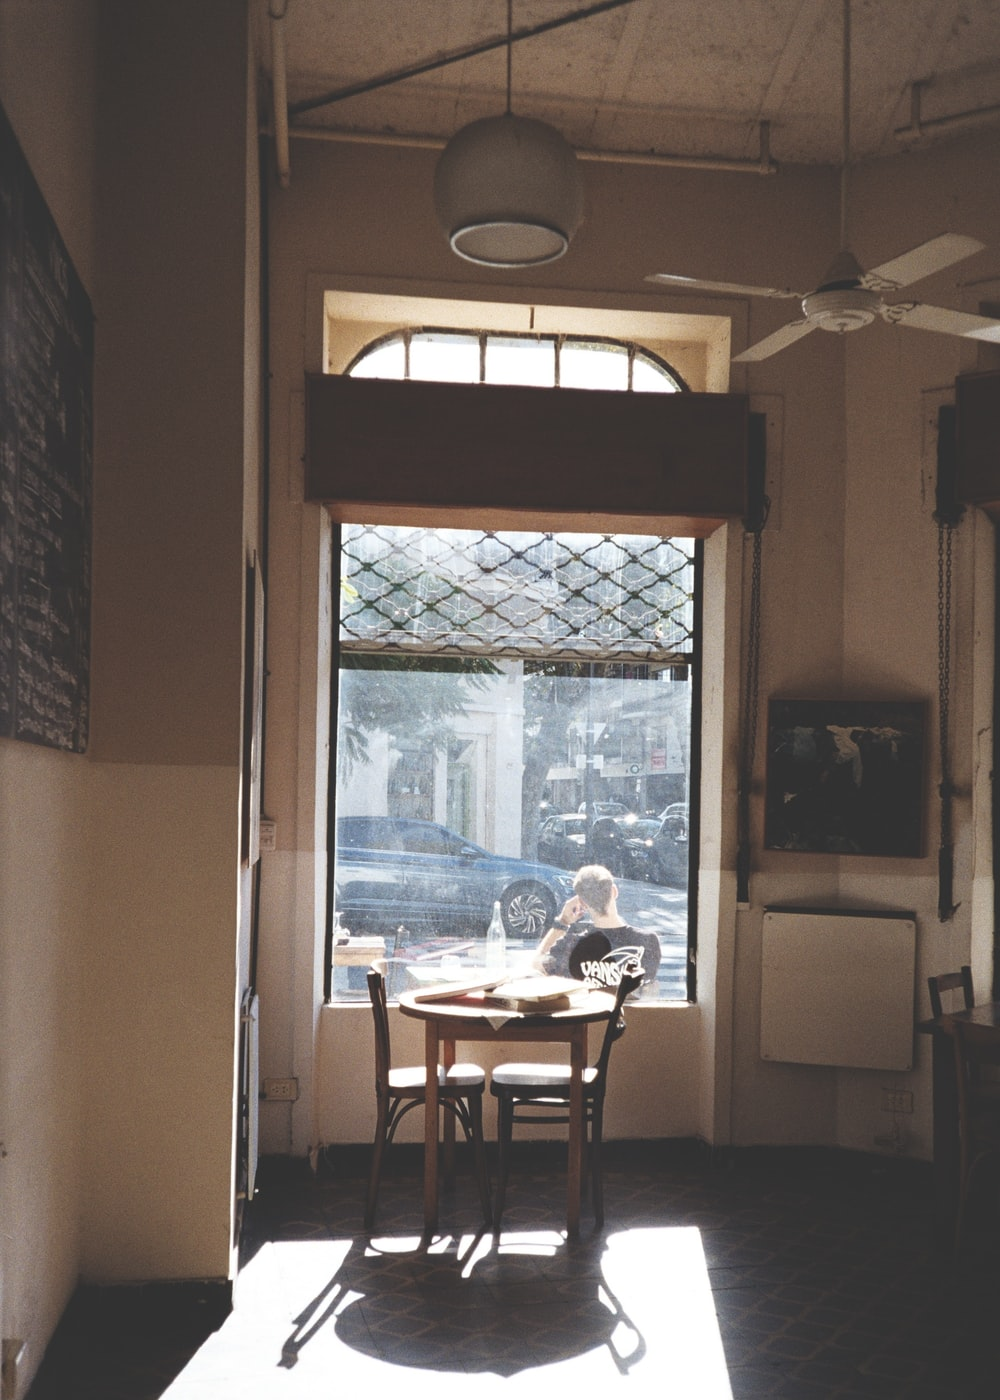 brown wooden table and chairs near window